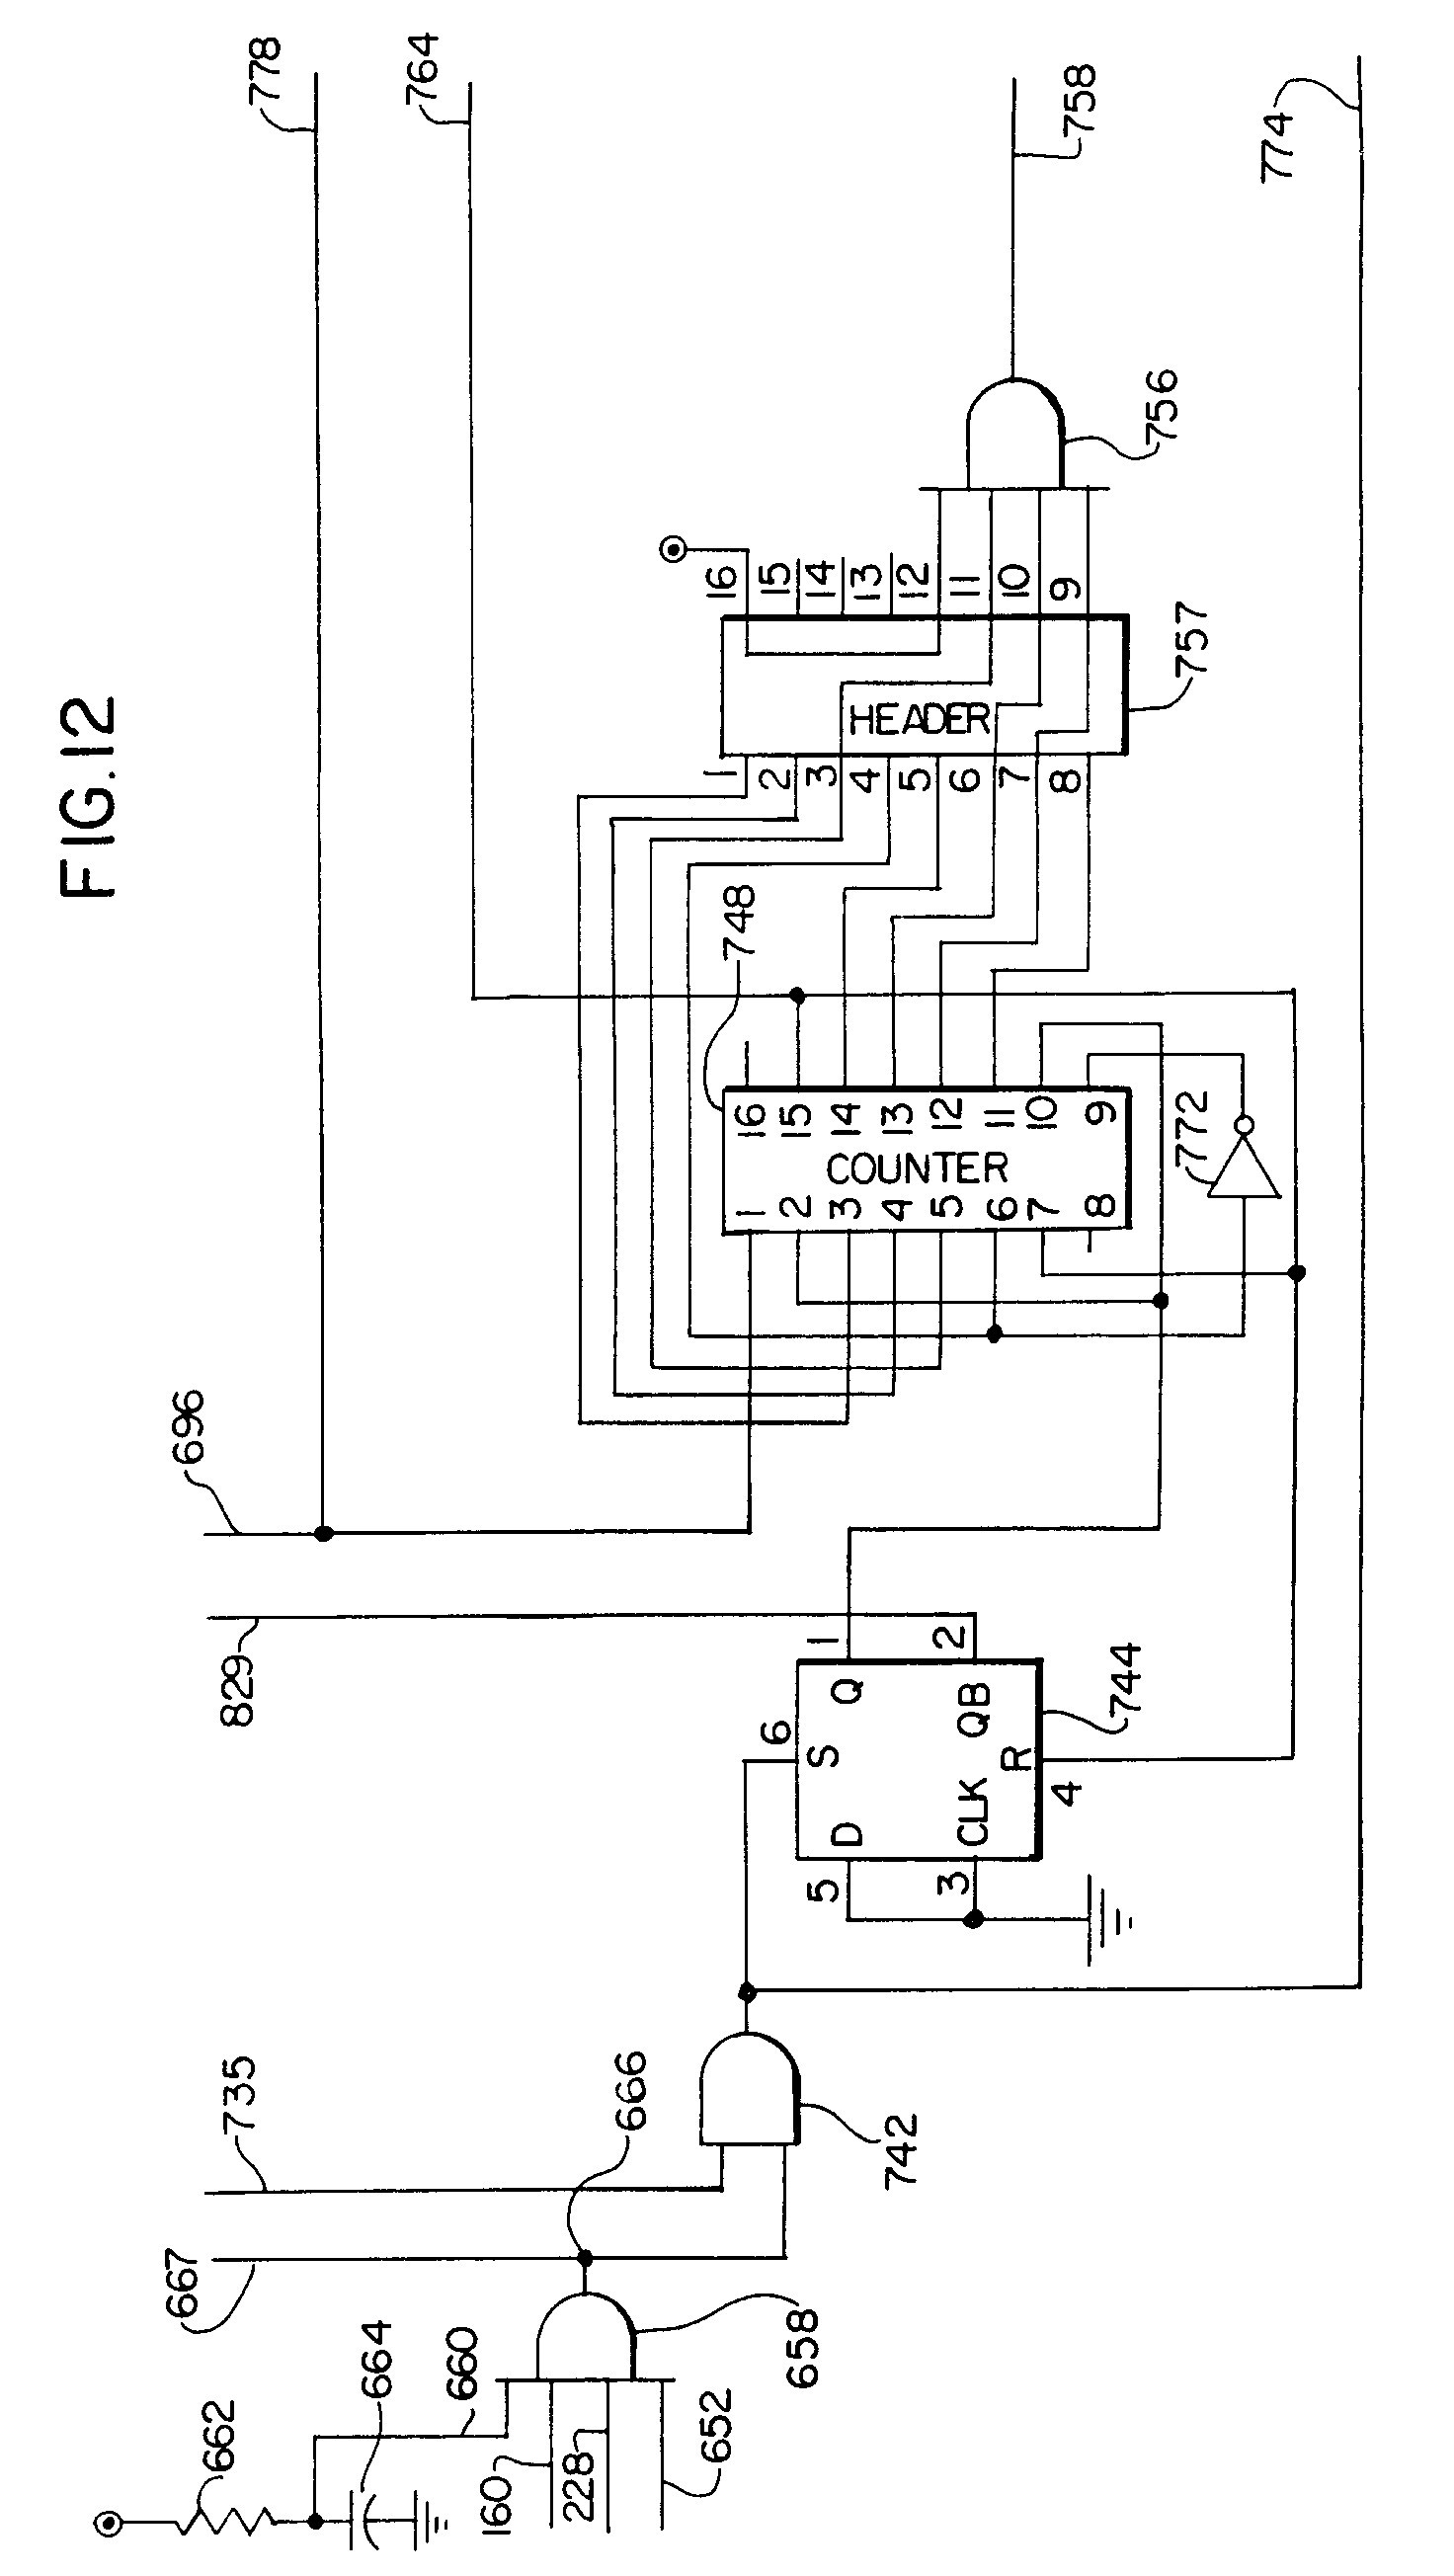 3 Phase 480 Volt Wiring Diagram